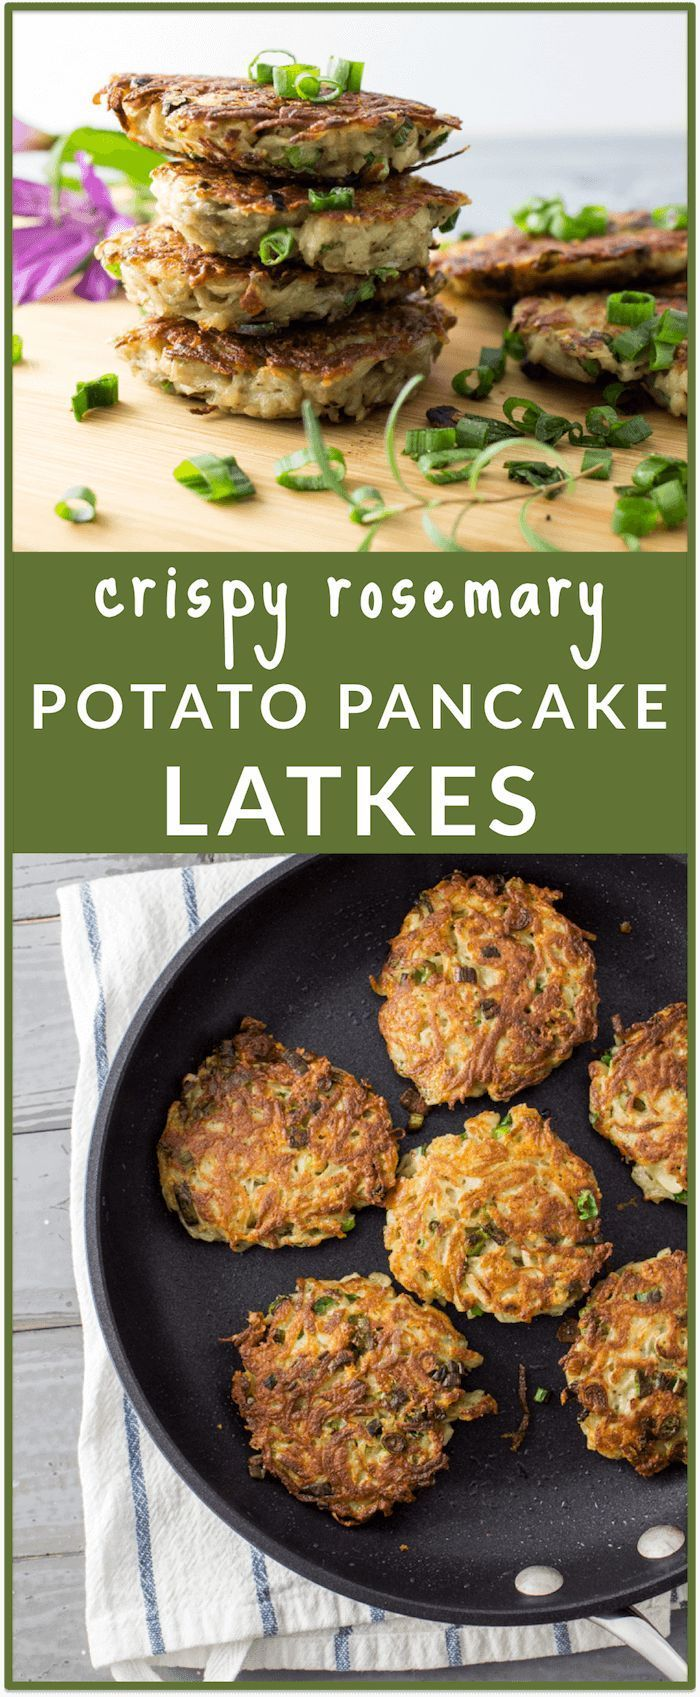 These garlic latkes (i.e., potato pancakes) are the perfect brunch food. Veganize with flax meal or chia seed.